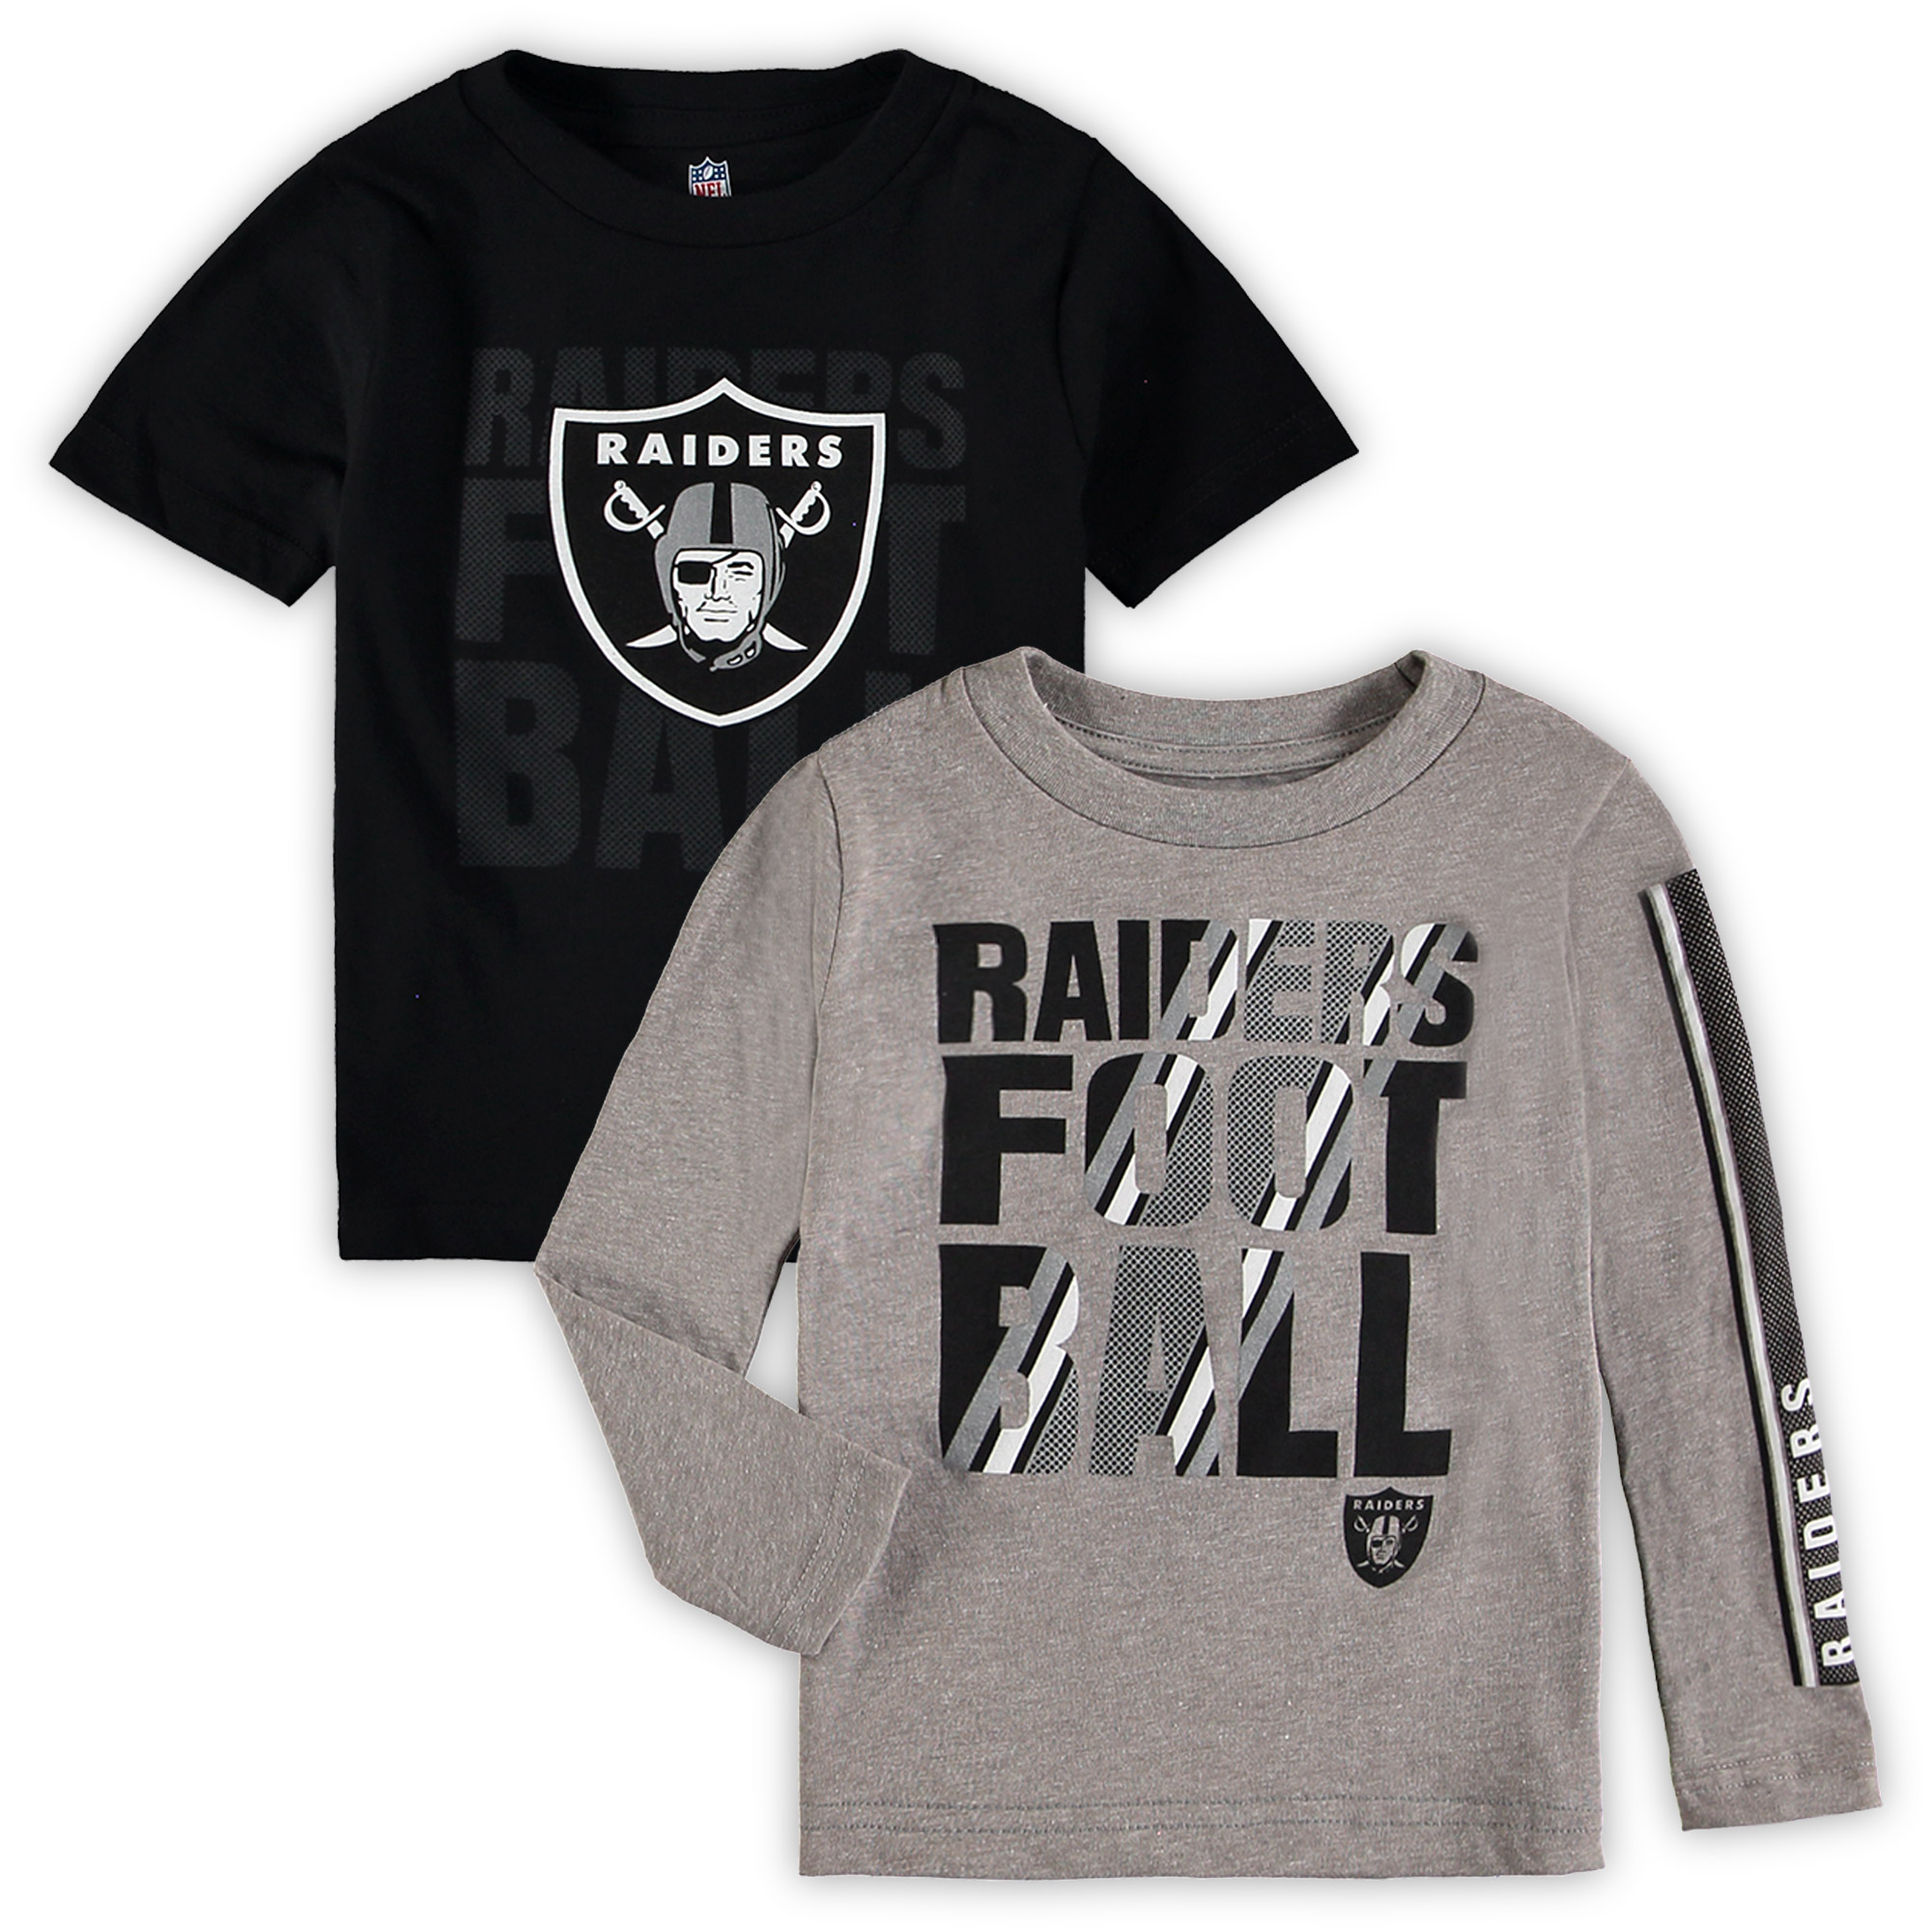 Oakland Raiders Toddler Two-Pack Playmaker Long Sleeve & Short Sleeve T-Shirt Combo - Black/Gray - 2T